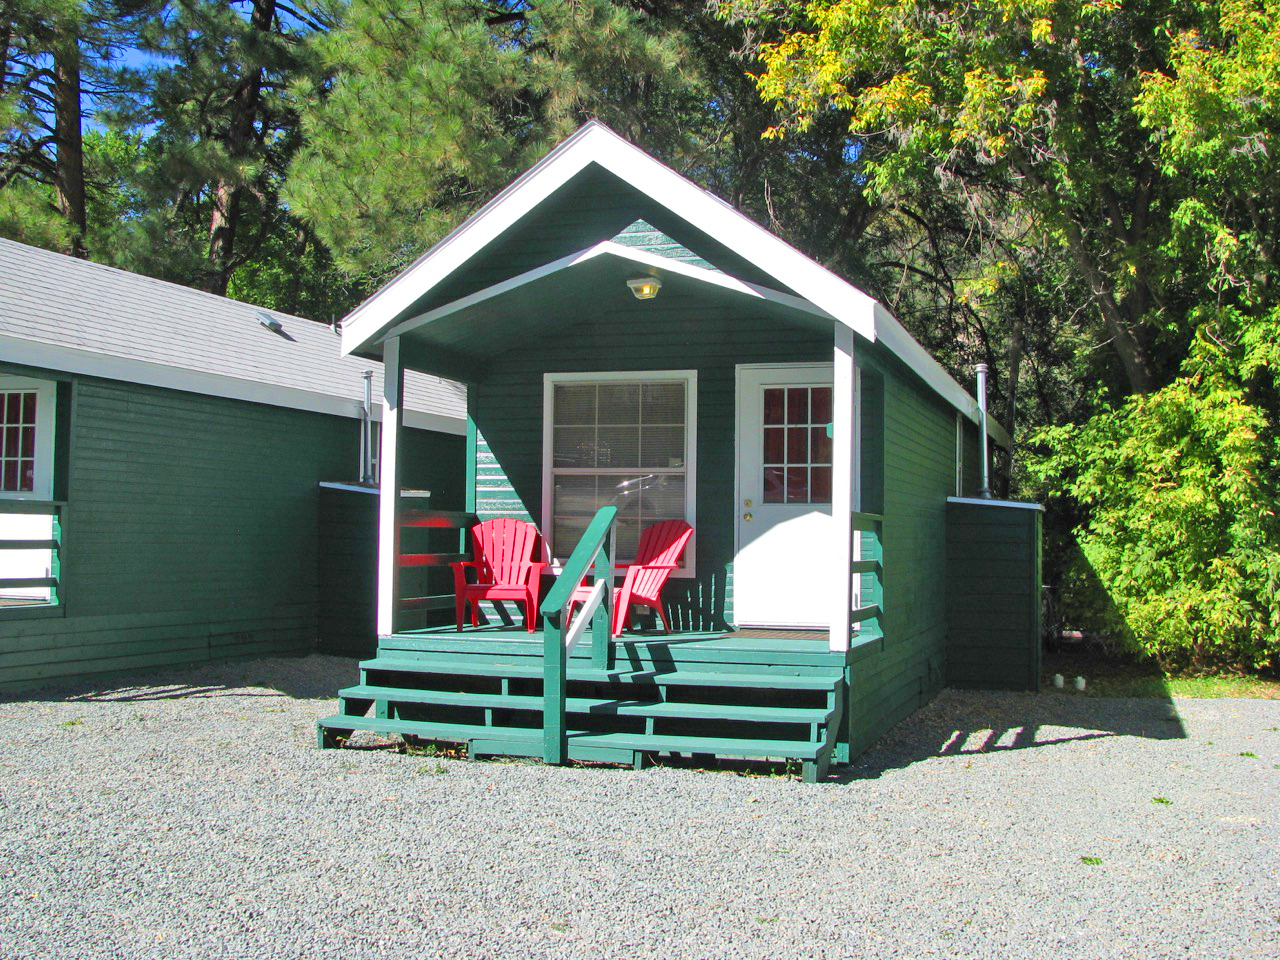 Cottage central cabins ruidoso new mexico nm for 6 bedroom cabins in ruidoso nm